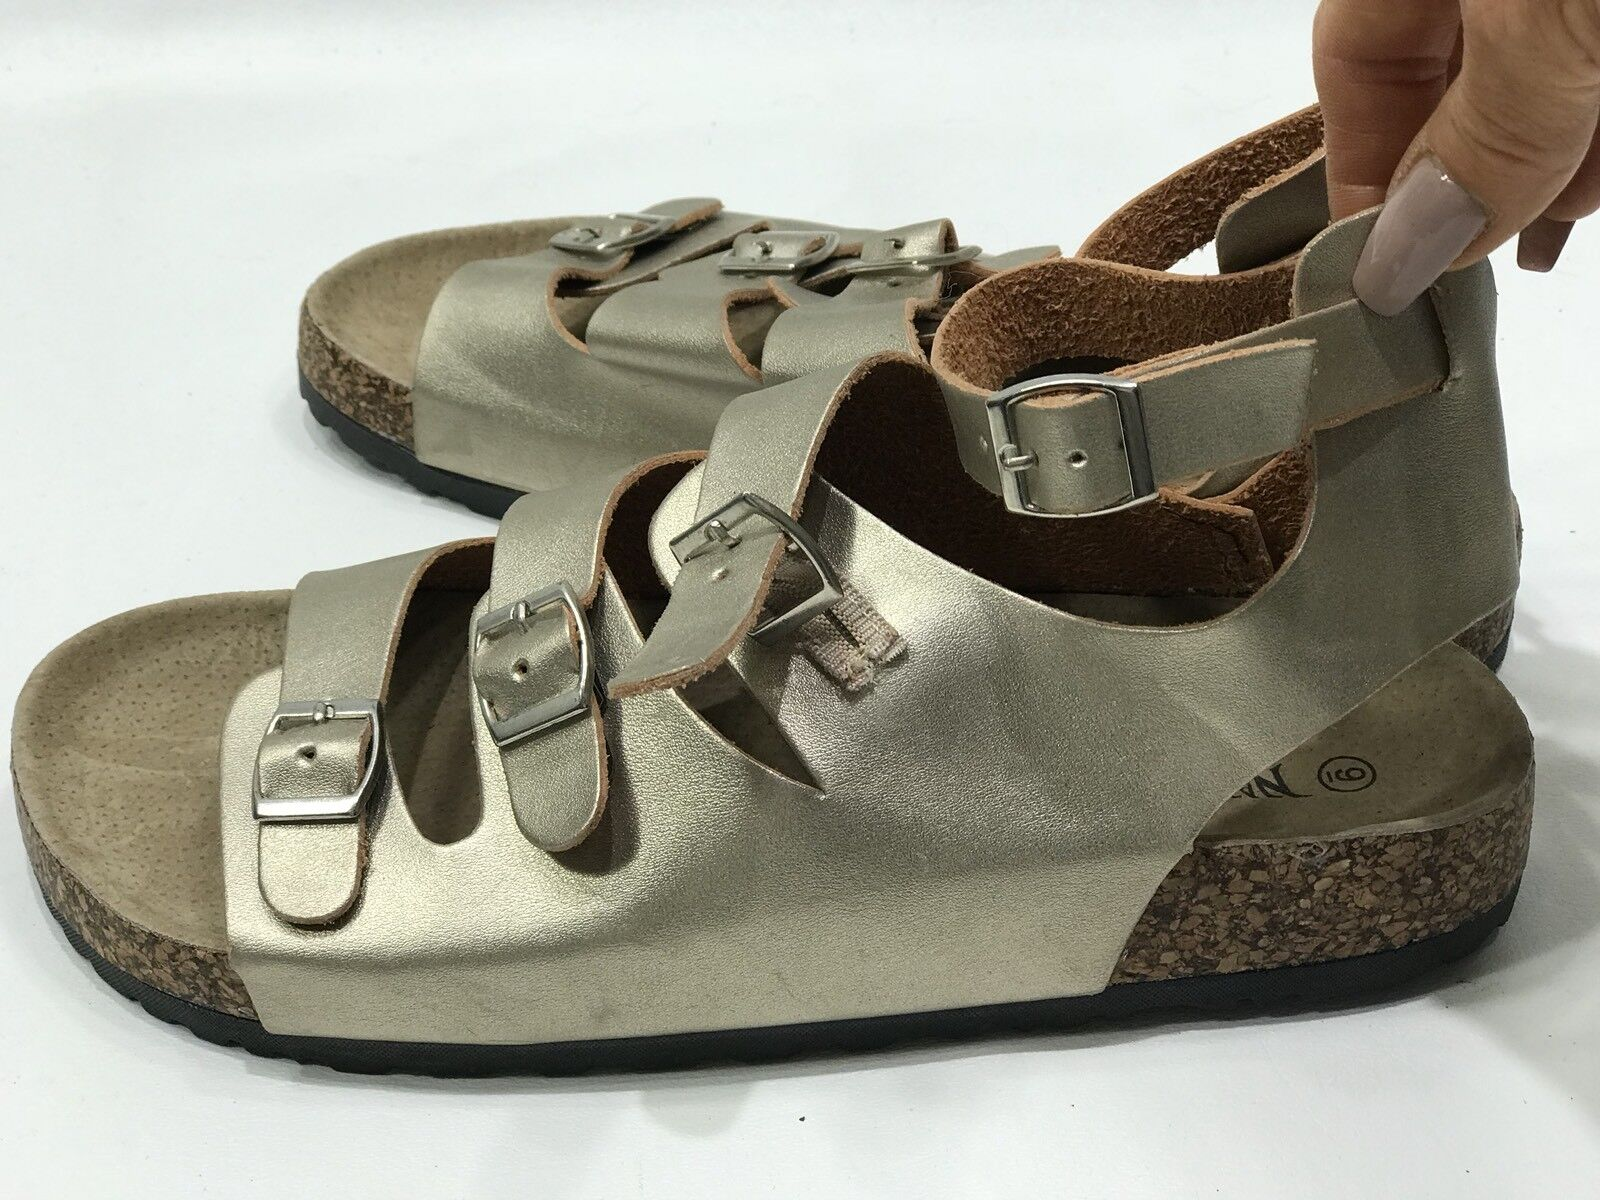 50d06645ad84 ...  155 EASTLAND HICKORY 1955 1955 1955 Tan Beaded Designer Toe Loop Flat  Sandals 6 0a3d26 ...